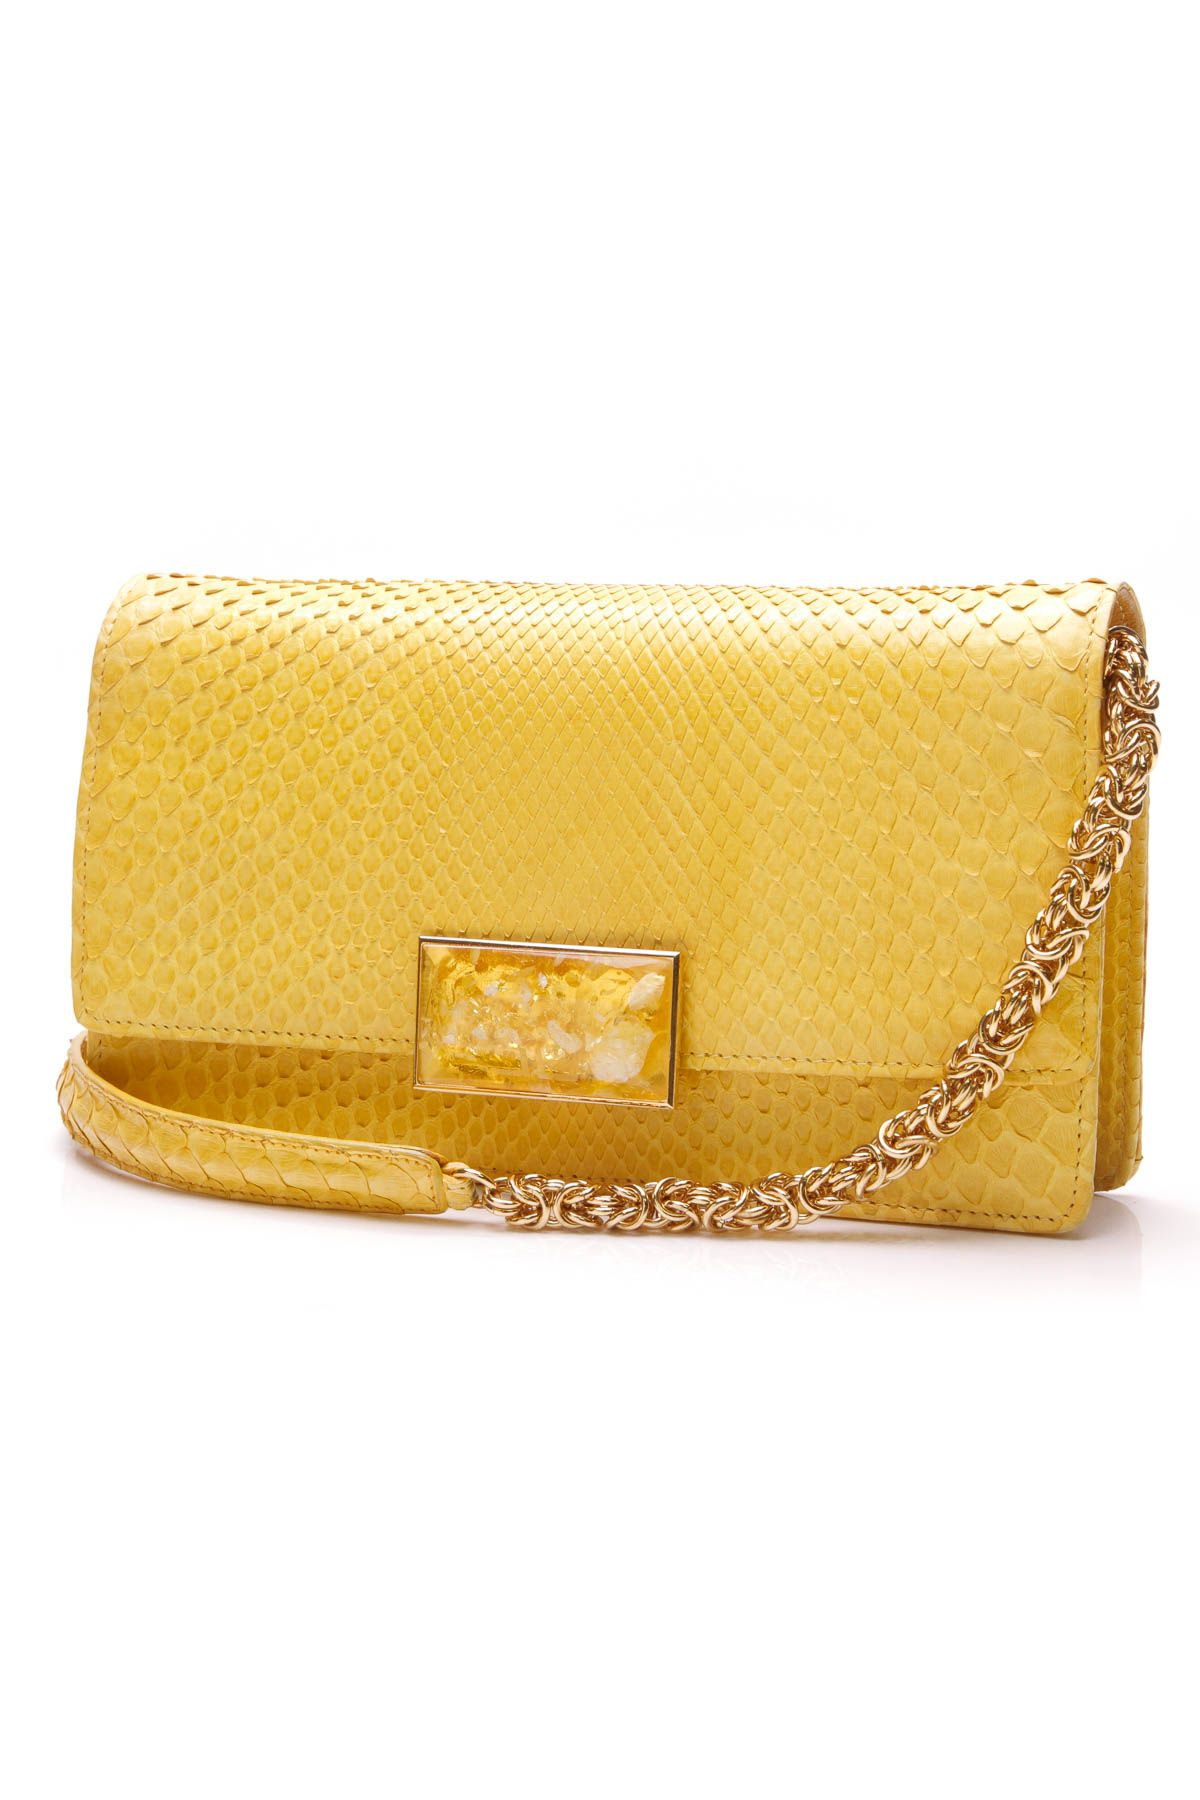 Jane Bolinger Evening Clutch Bag - Python Chanel Handbags 4895989763ecb